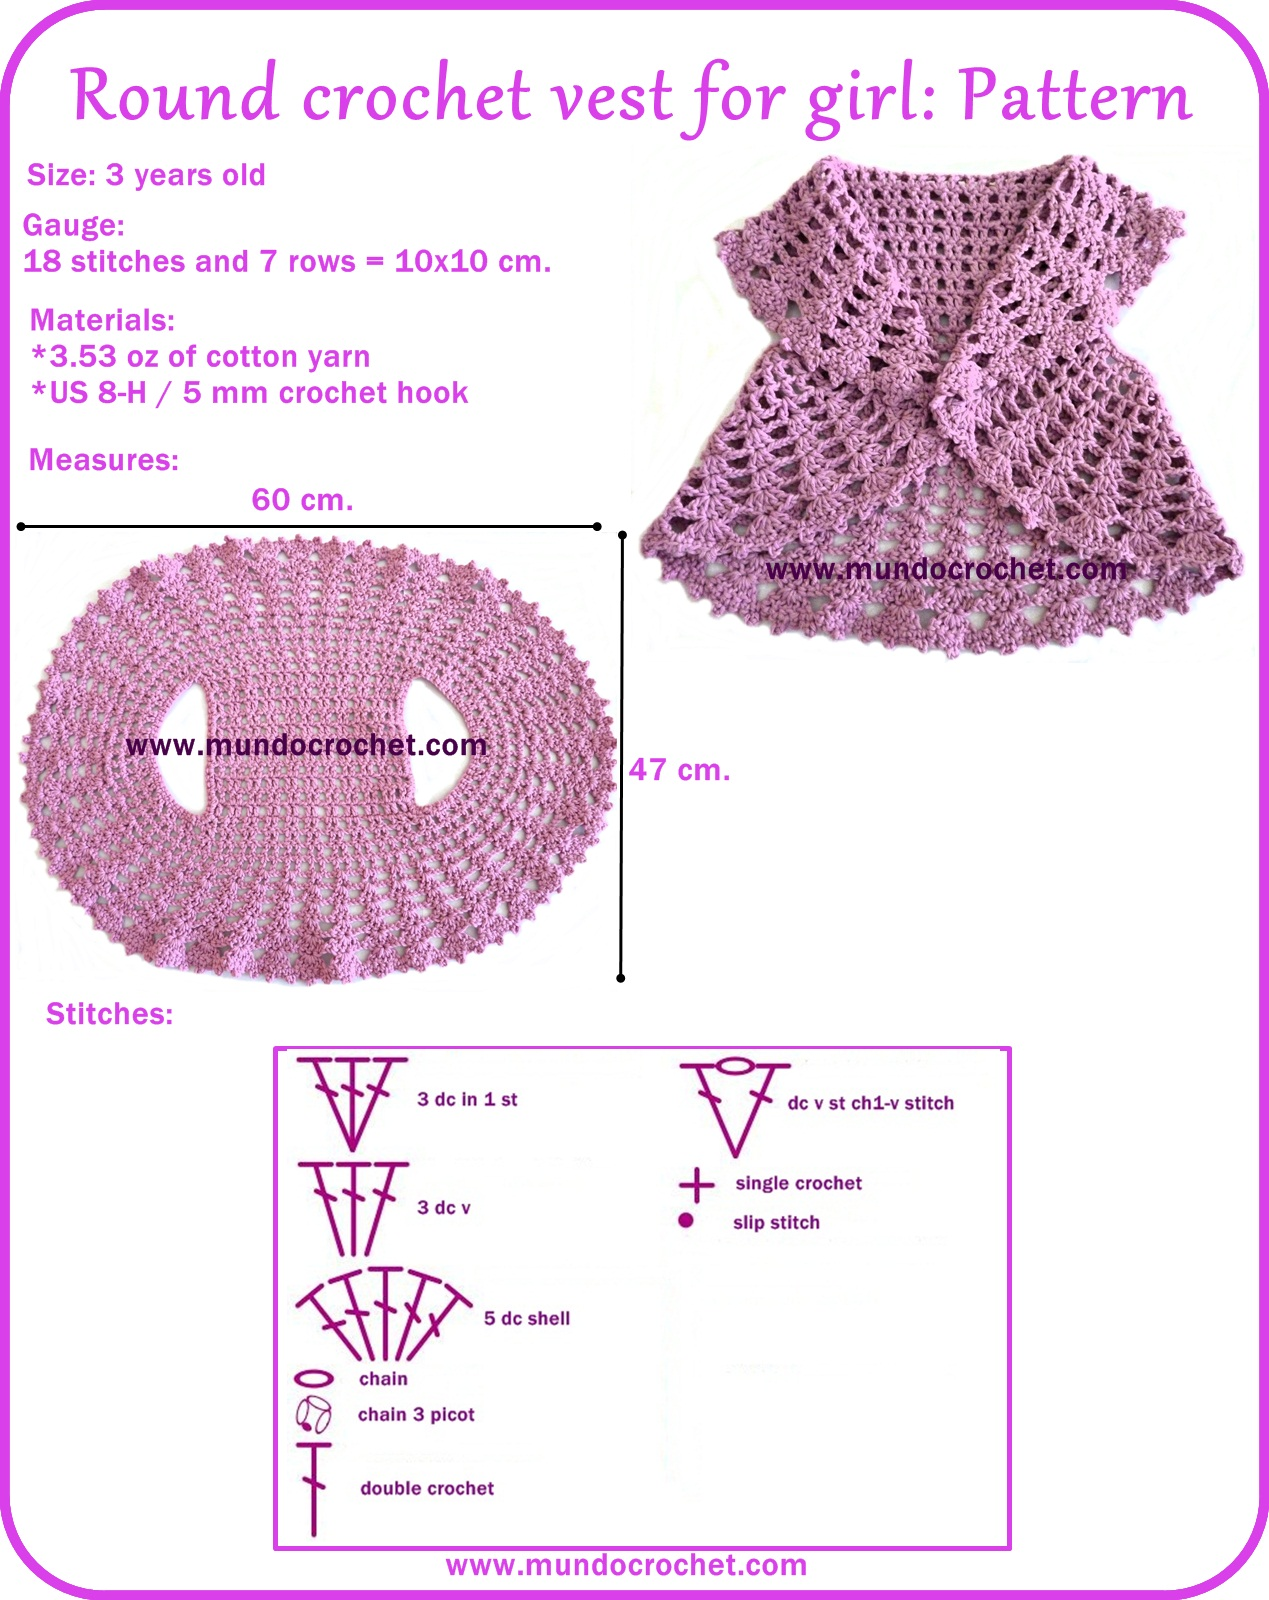 Patterns Archivos - Mundo Crochet